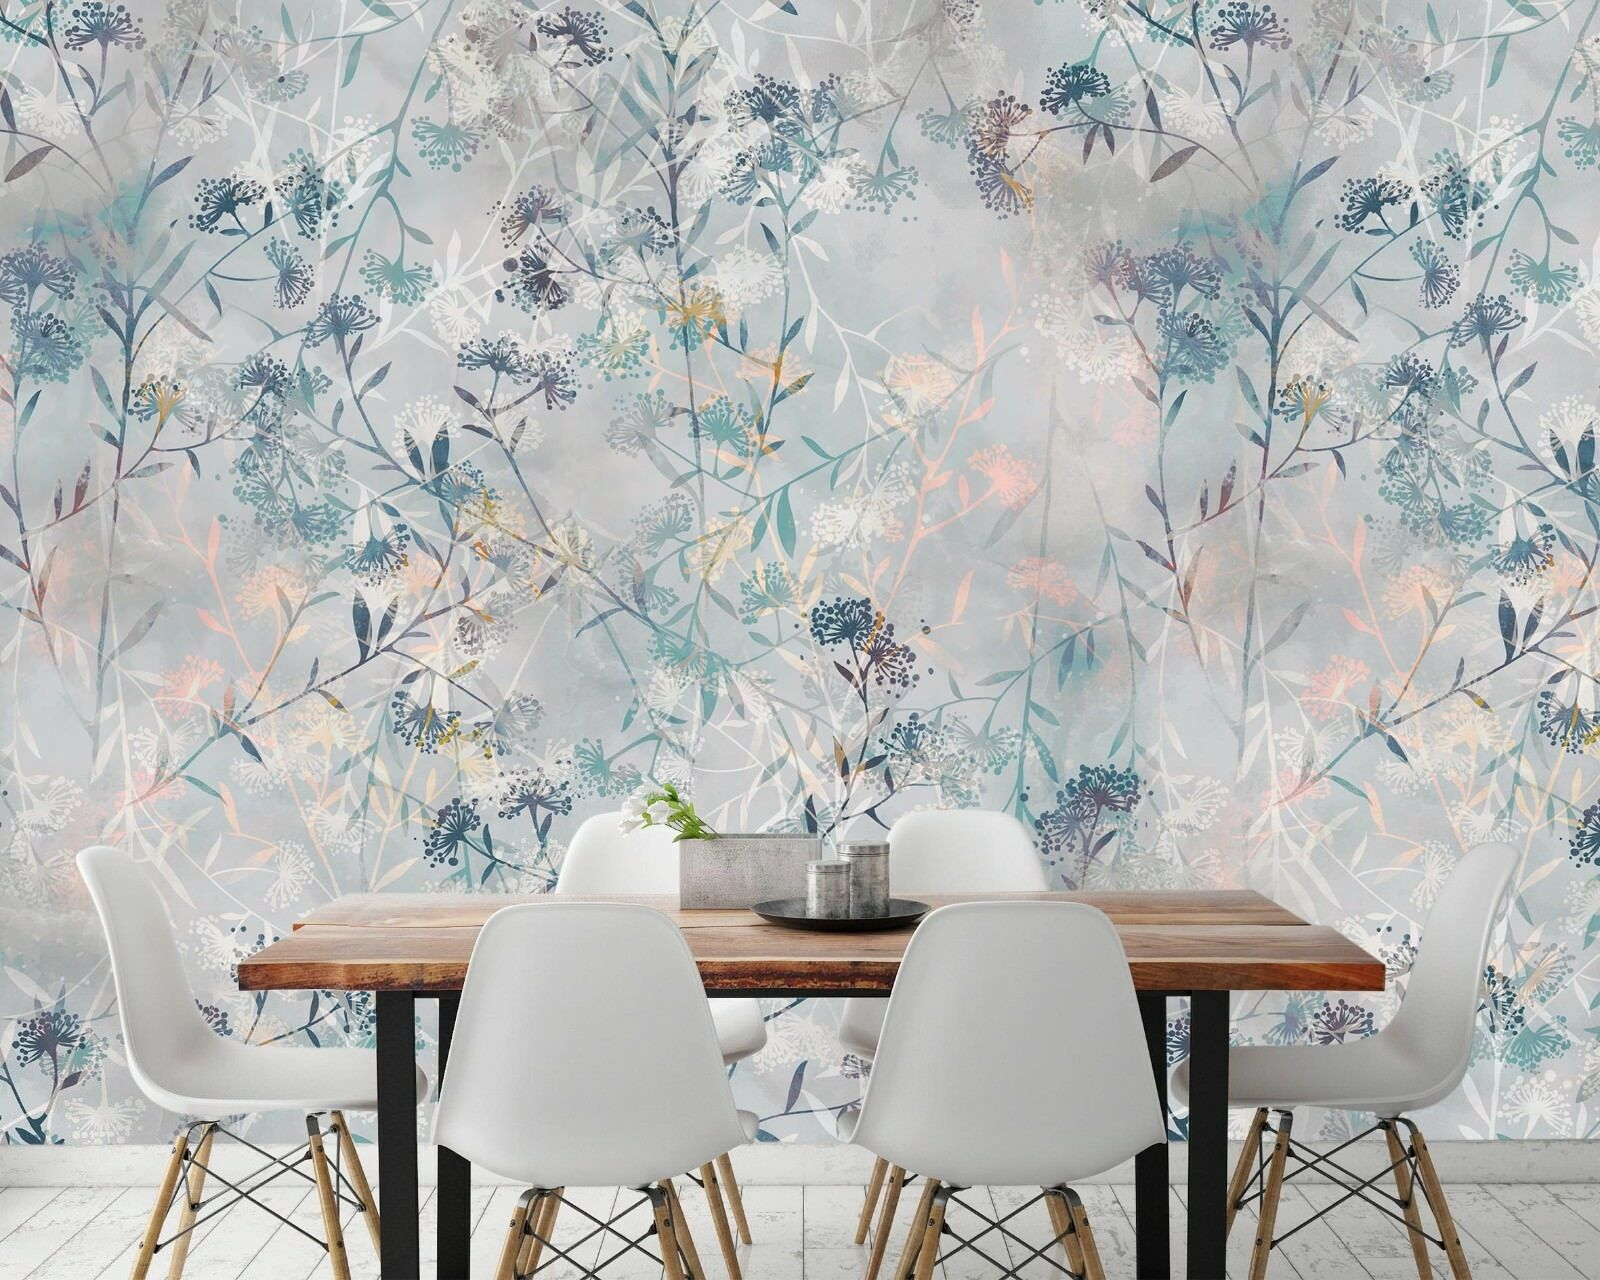 3D Misty Plant Garden 564 Wall Paper Wall Print Decal Deco Indoor Wall Mural CA